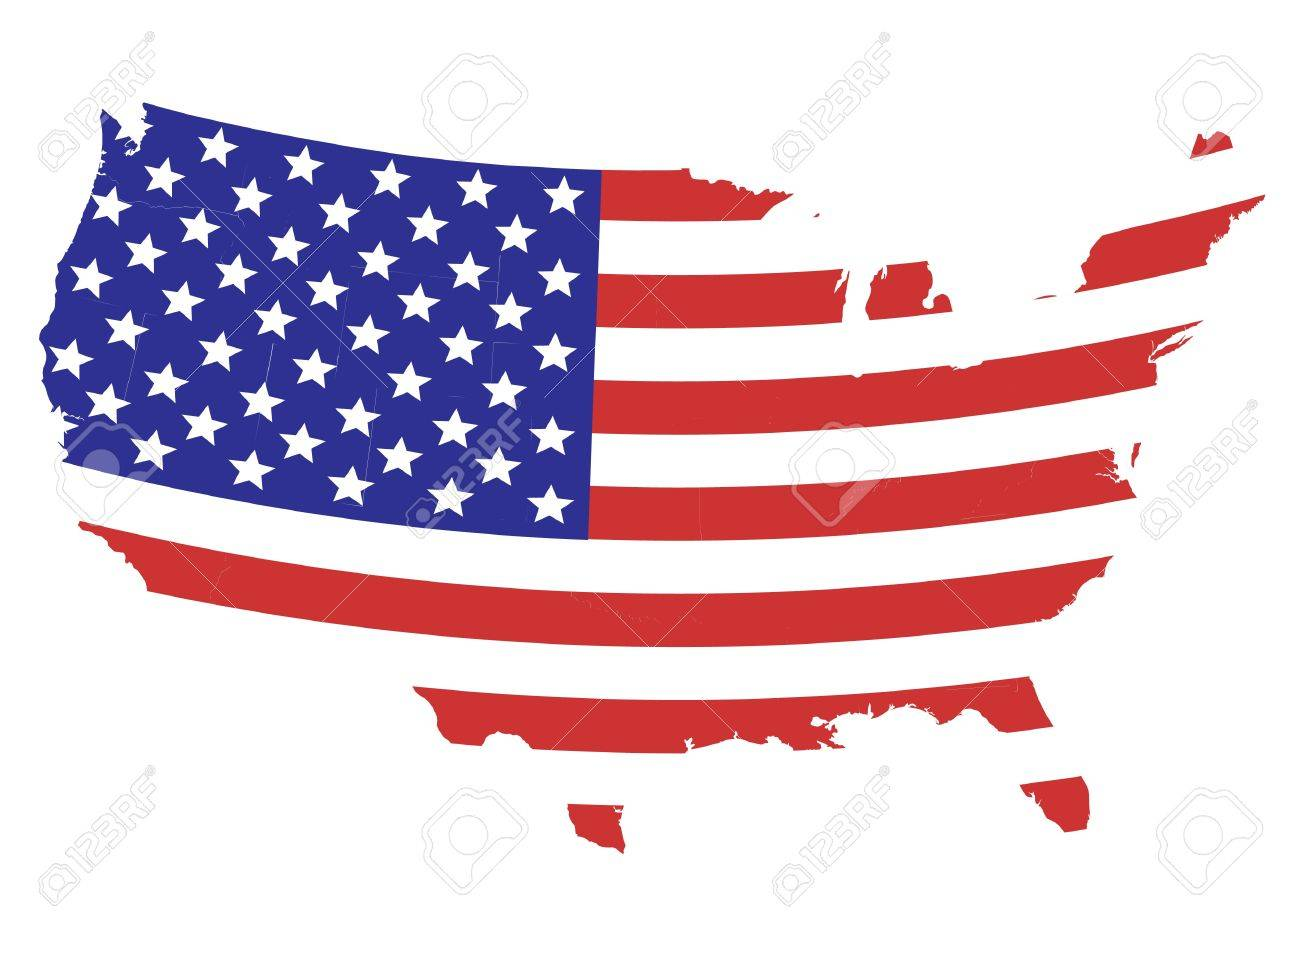 Map Of United States Of America With American Flag Design Stock - Us map american flag